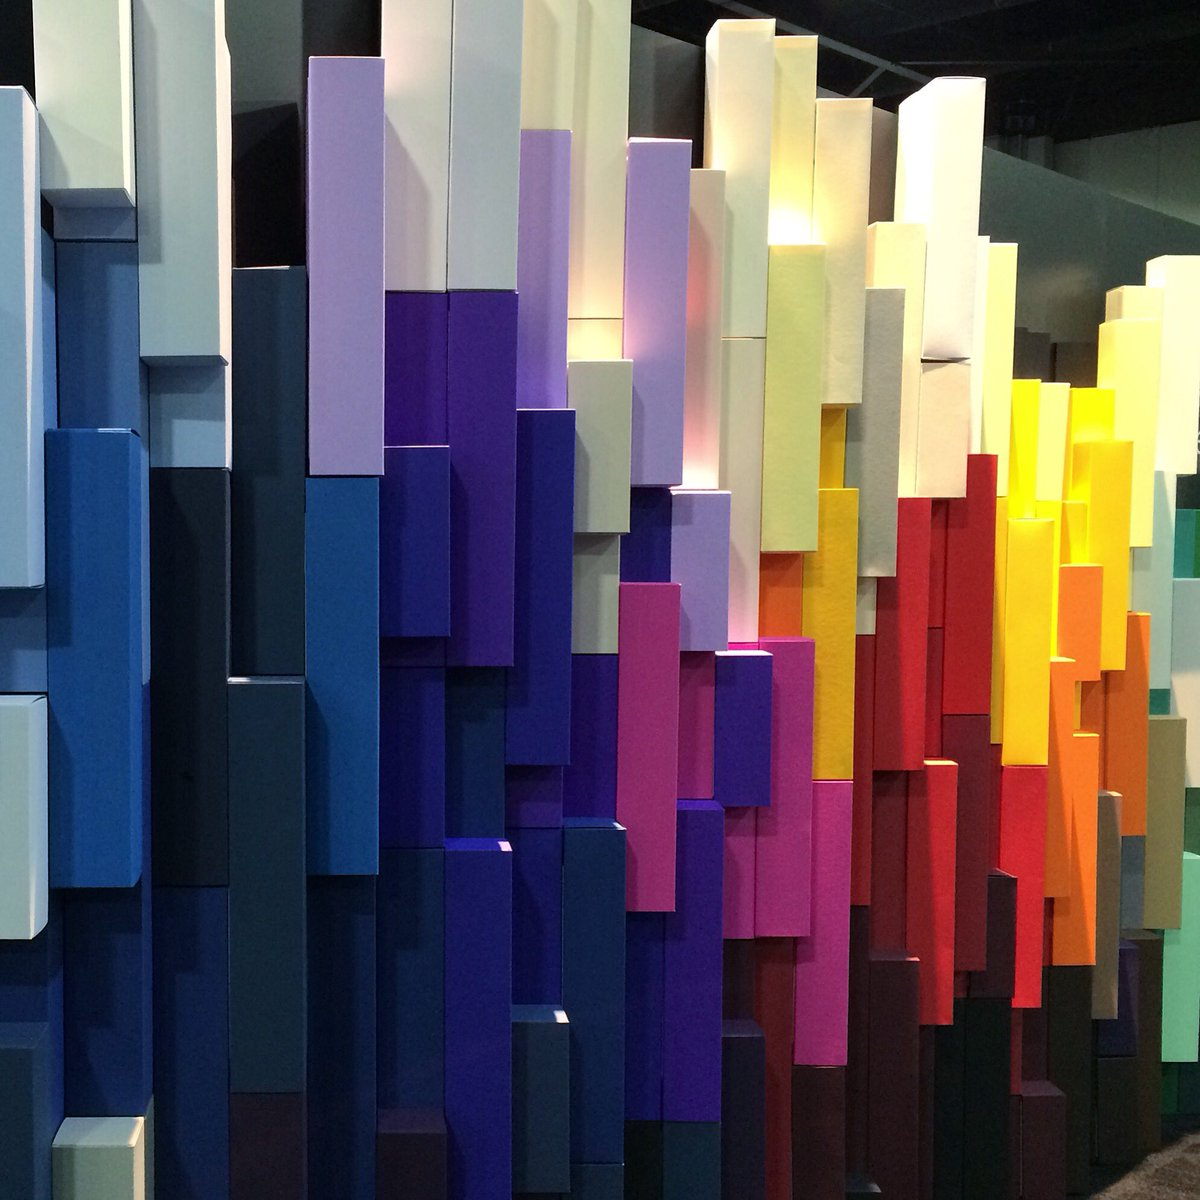 Super cool display at #HOWlive #colorplanpapers @jamescropper https://t.co/xFYnuMGdcR #packaging https://t.co/KjoWdJw8gp